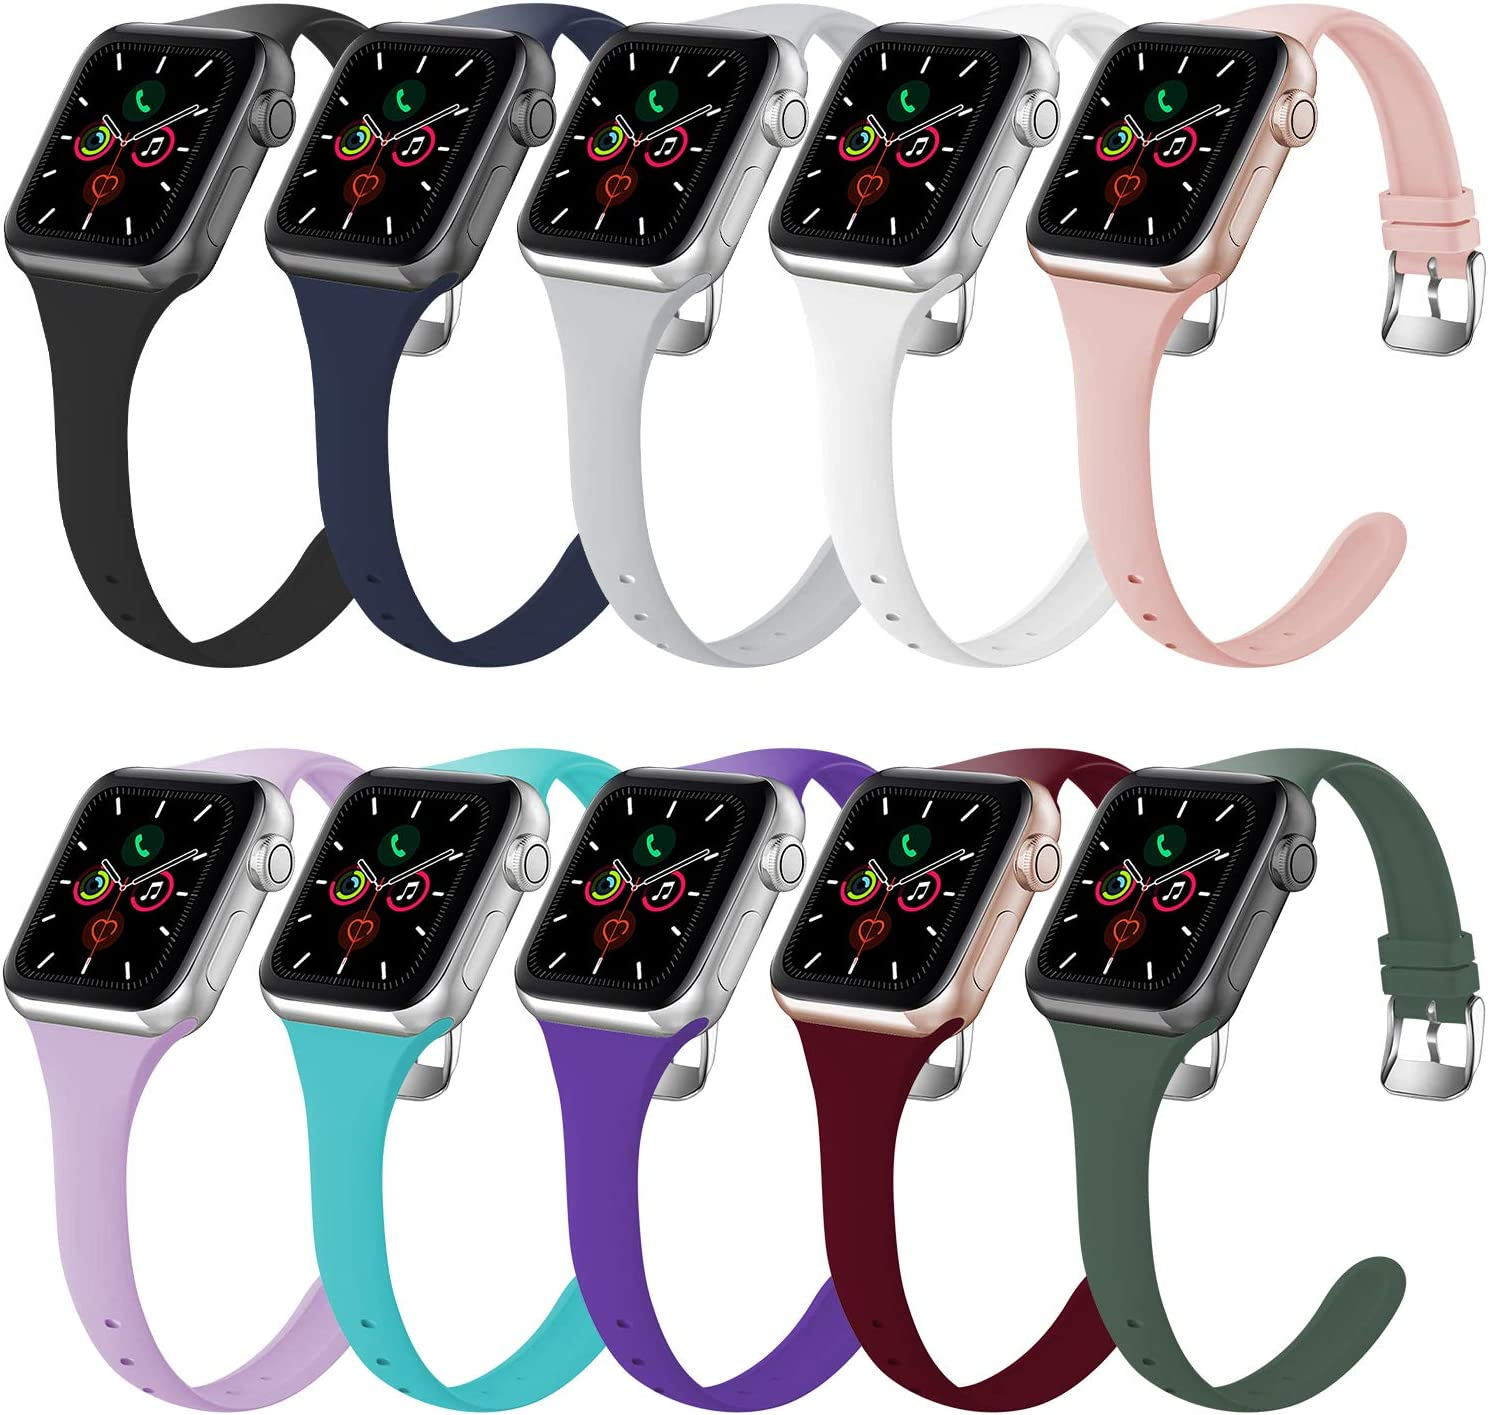 Acrbiutu Bands Compatible with Apple Watch 38mm 40mm 42mm 44mm, Thin Slim Narrow Replacement Soft Silicone Sport Accessory Strap Wristband for iWatch SE Series 6/5/4/3/2/1